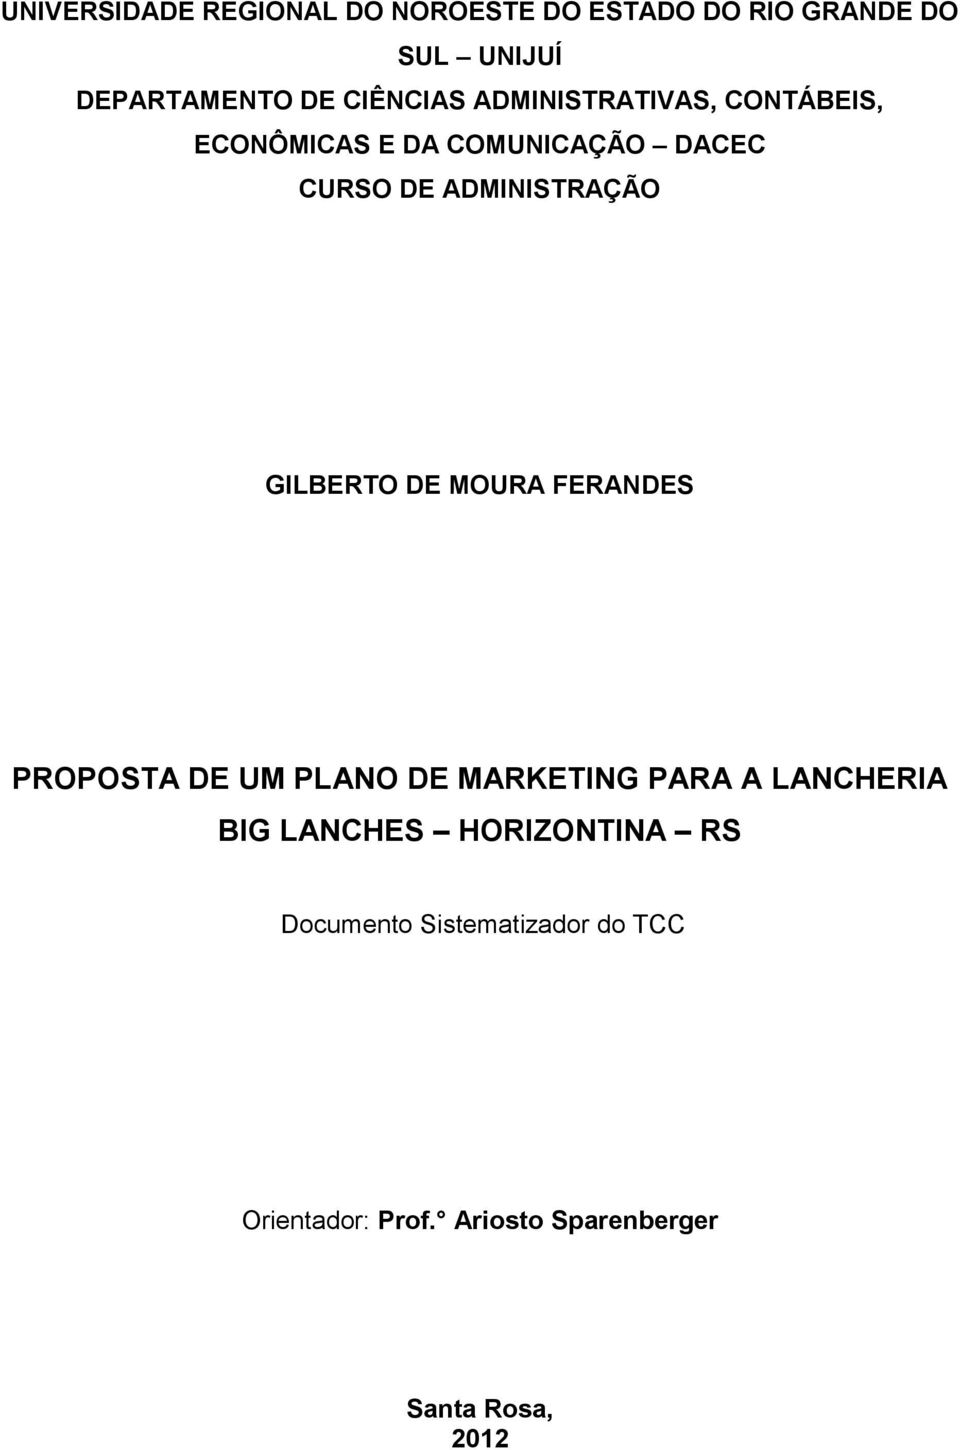 GILBERTO DE MOURA FERANDES PROPOSTA DE UM PLANO DE MARKETING PARA A LANCHERIA BIG LANCHES